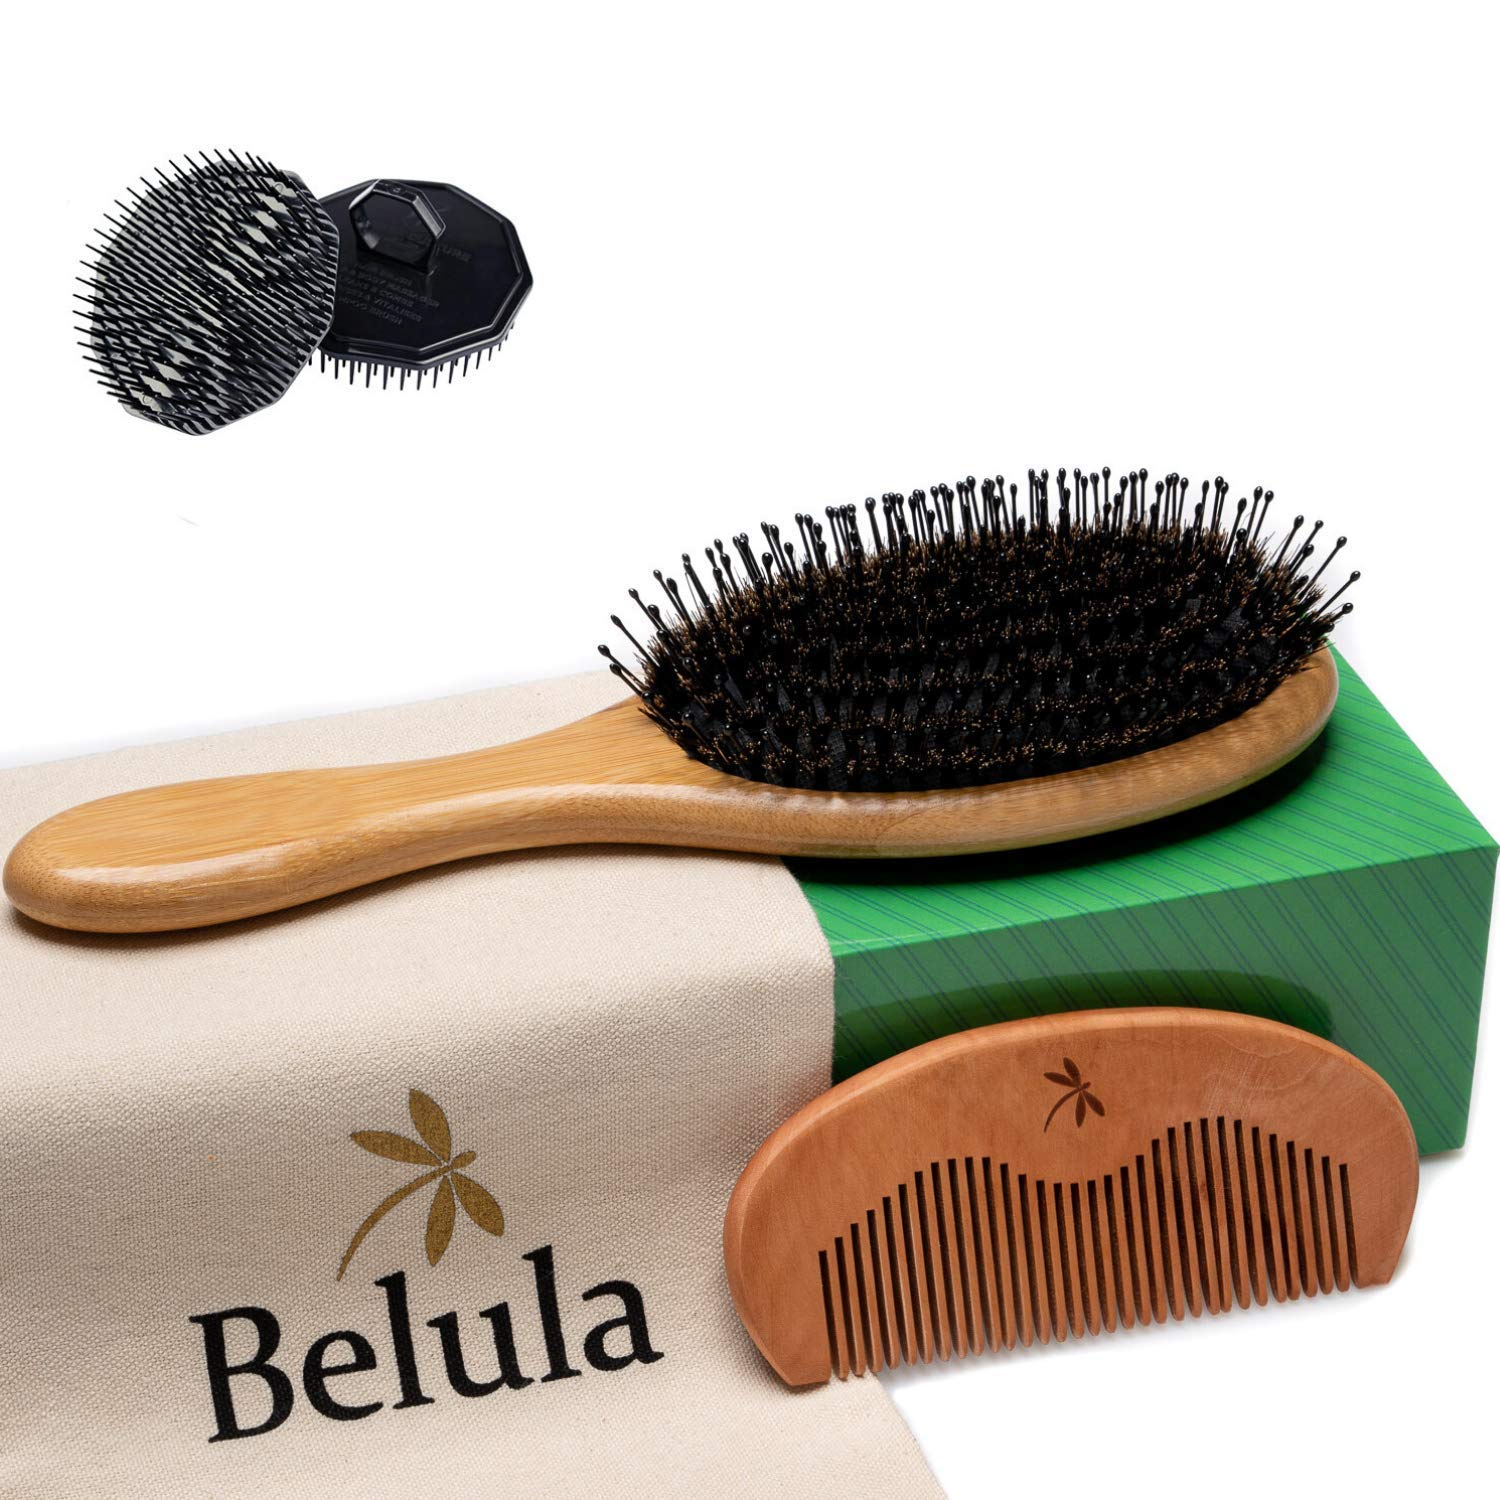 Premium Boar Bristle Hair Brush for Men Set.Styling Mens' Hair Brush with Nylon Pins. Boar Bristle Brush, 2 x Palm Brush, Wooden Comb & Travel Bag Included.